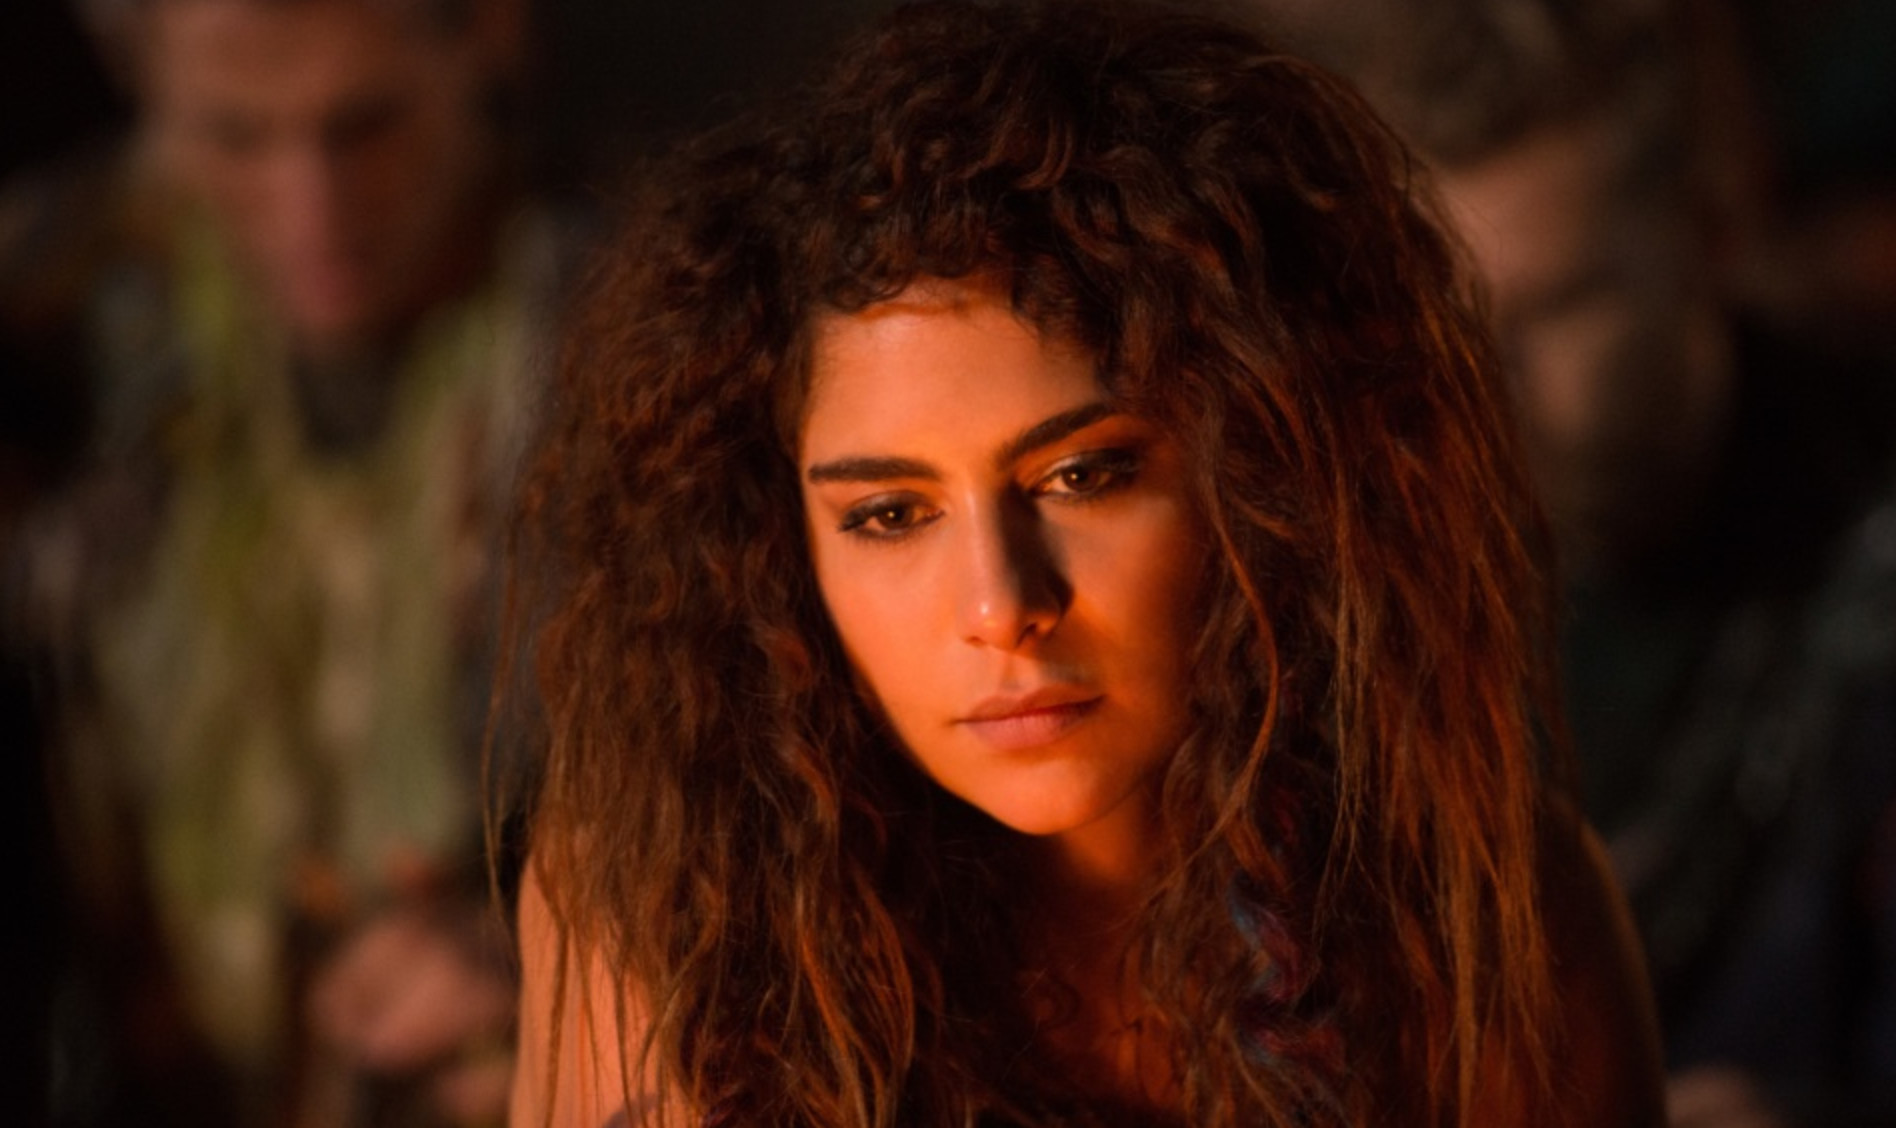 'The 100's Lindsey Morgan Opens Up About Raven's Terrifyingly Uncertain Future, Shipping Raven & Luna, & the Emotional Toll of the Intense Series